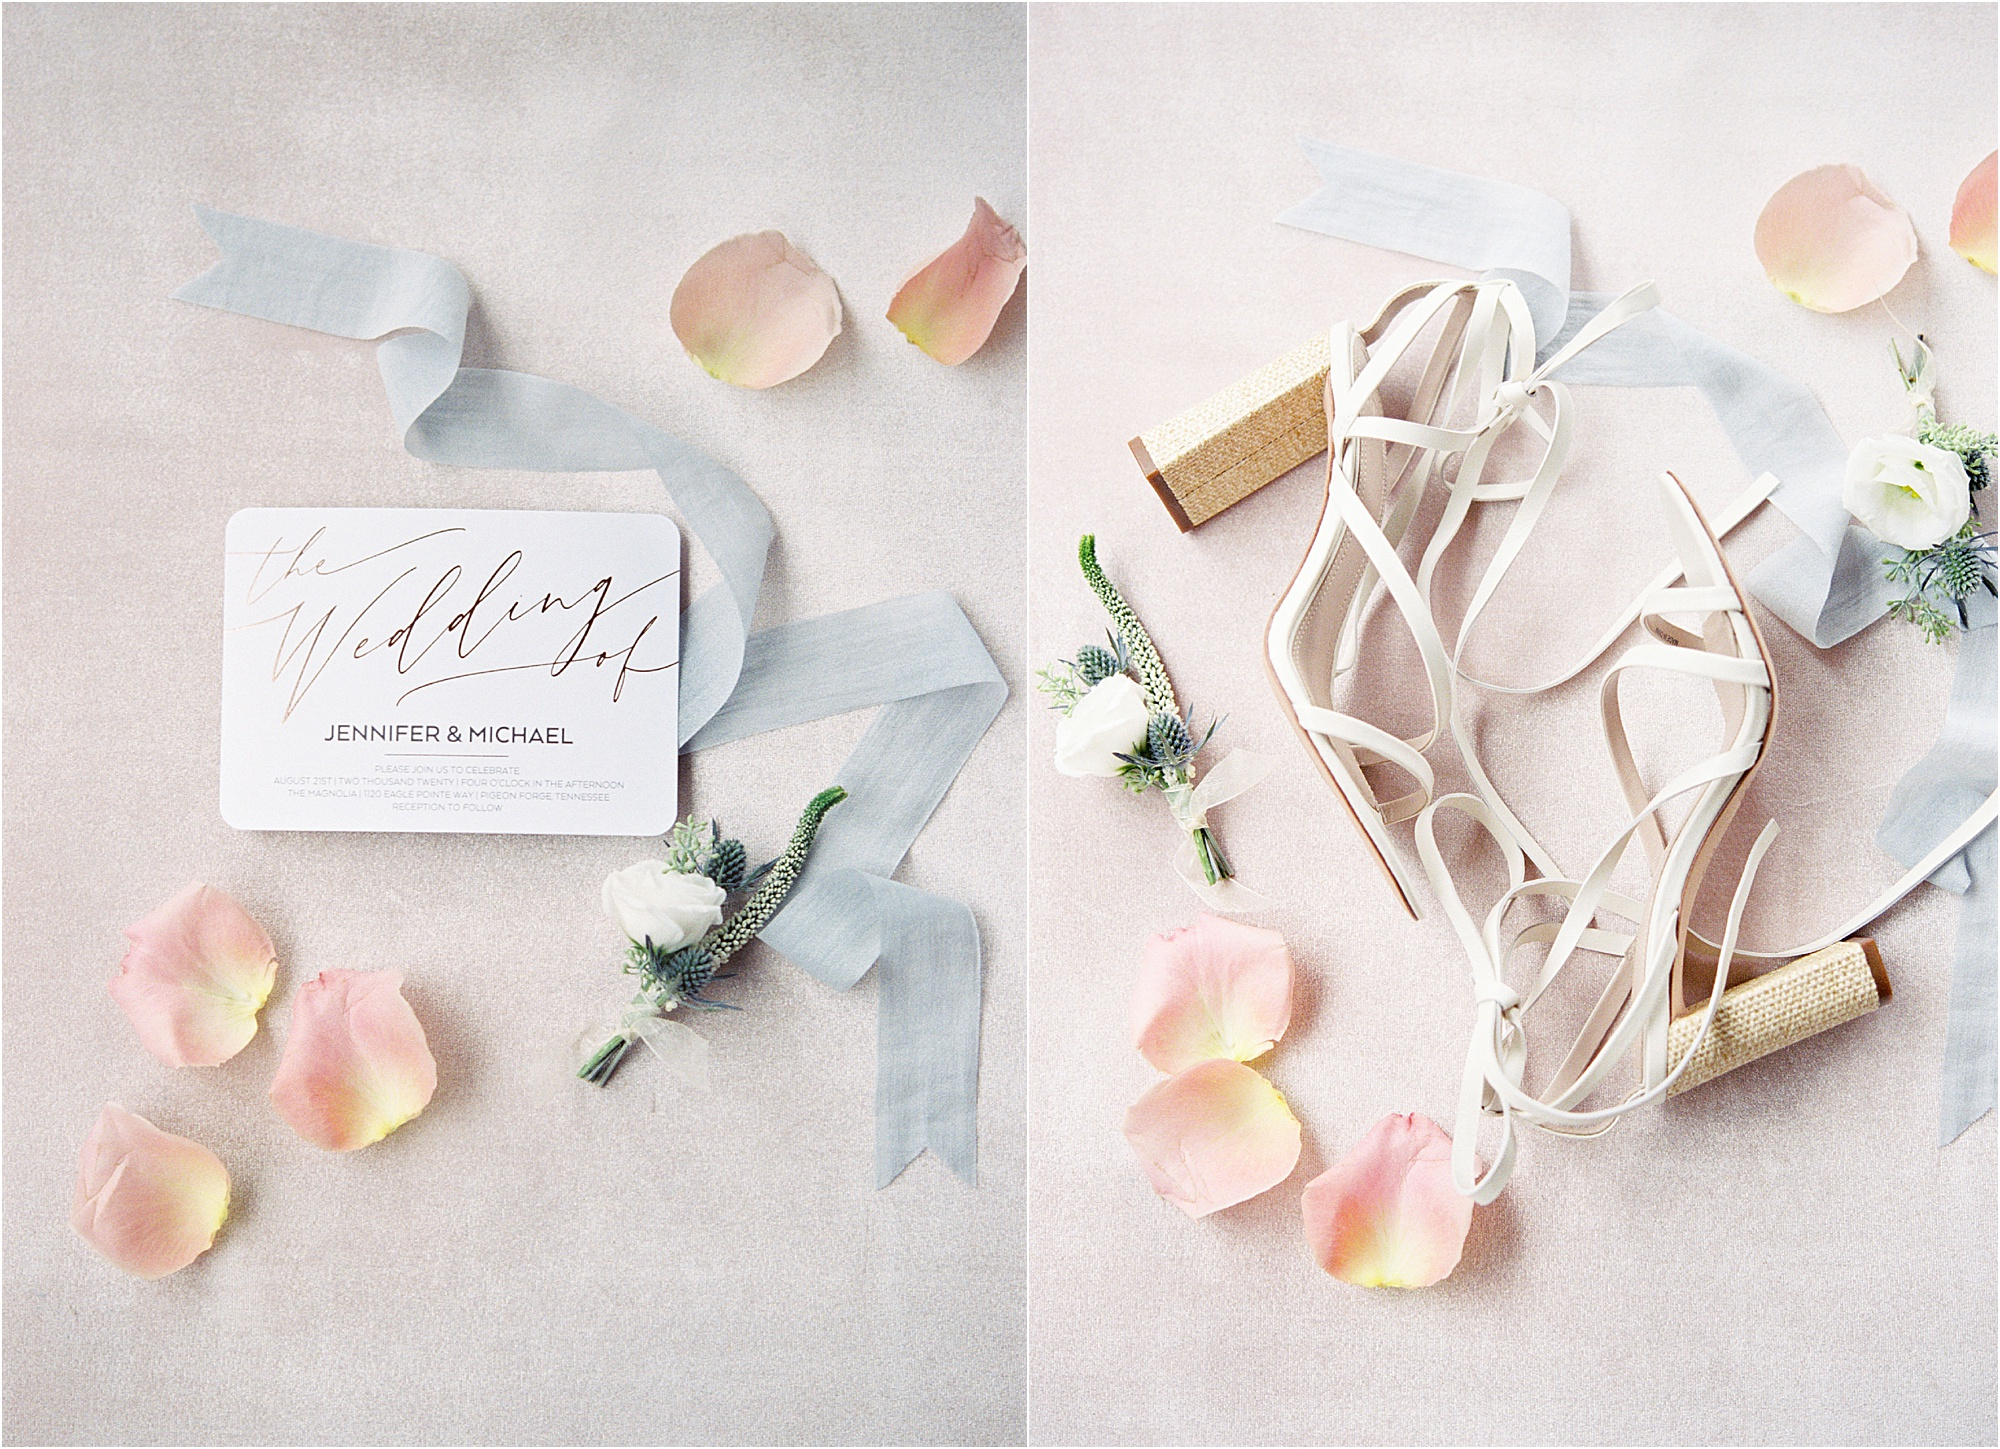 blue and light pink wedding details with white wedding shoes